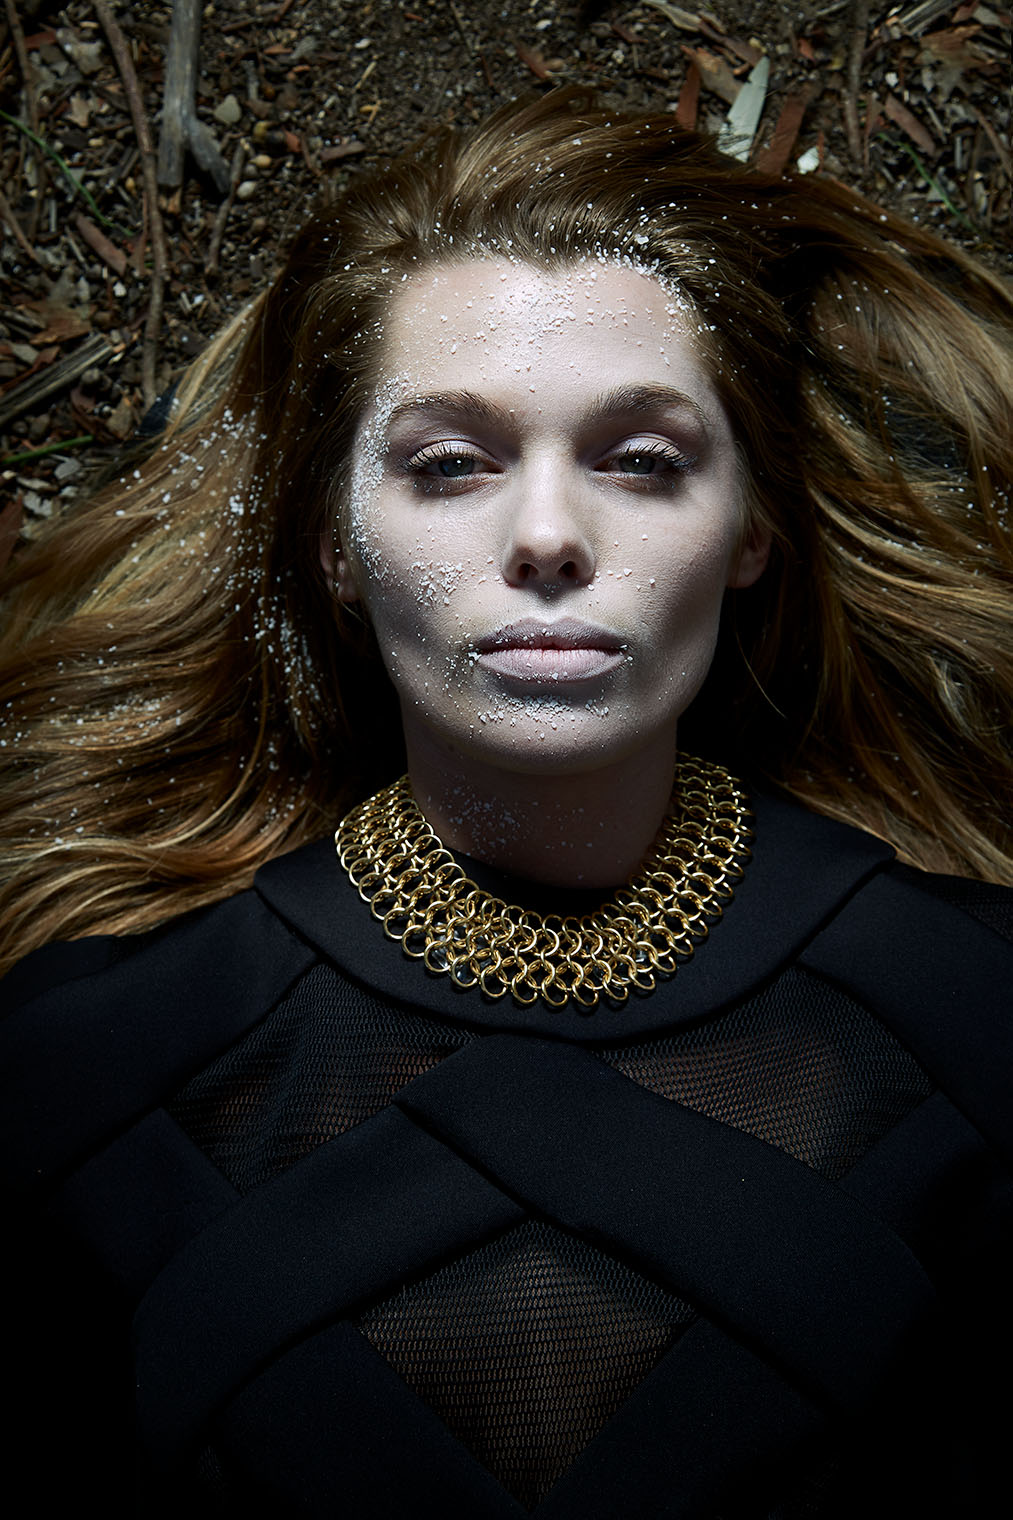 Asleep or dead? Beauty with pale skin and calm expression in dark portrait photograph